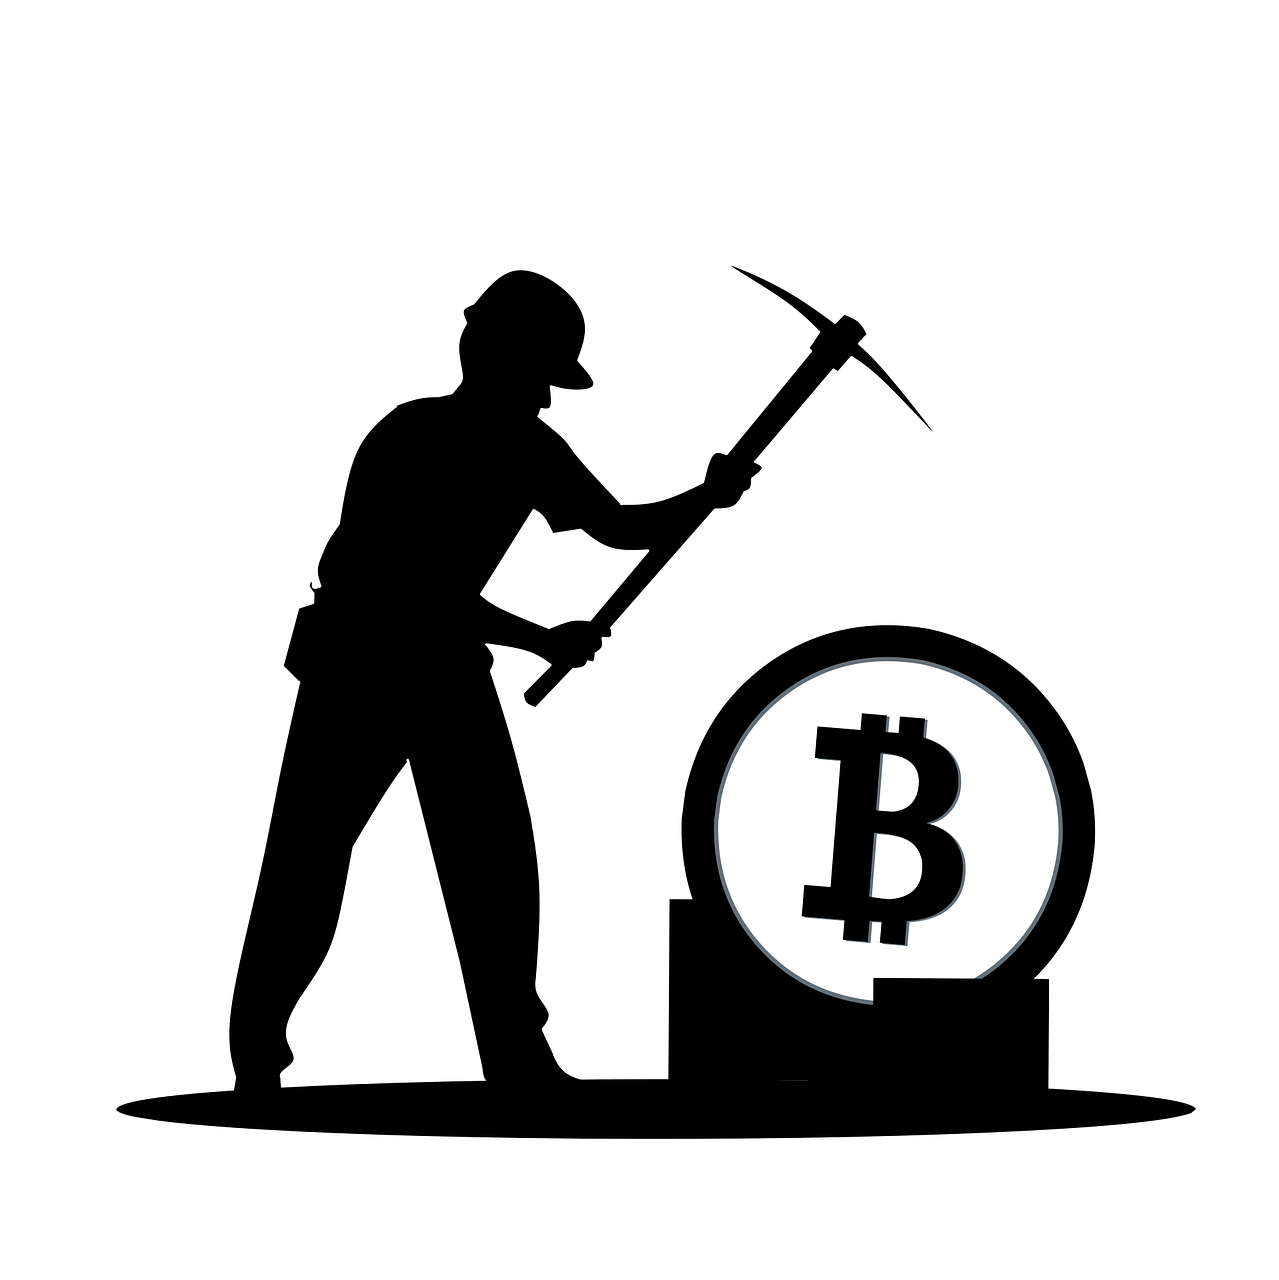 Silhouette of a man mining Bitcoin.